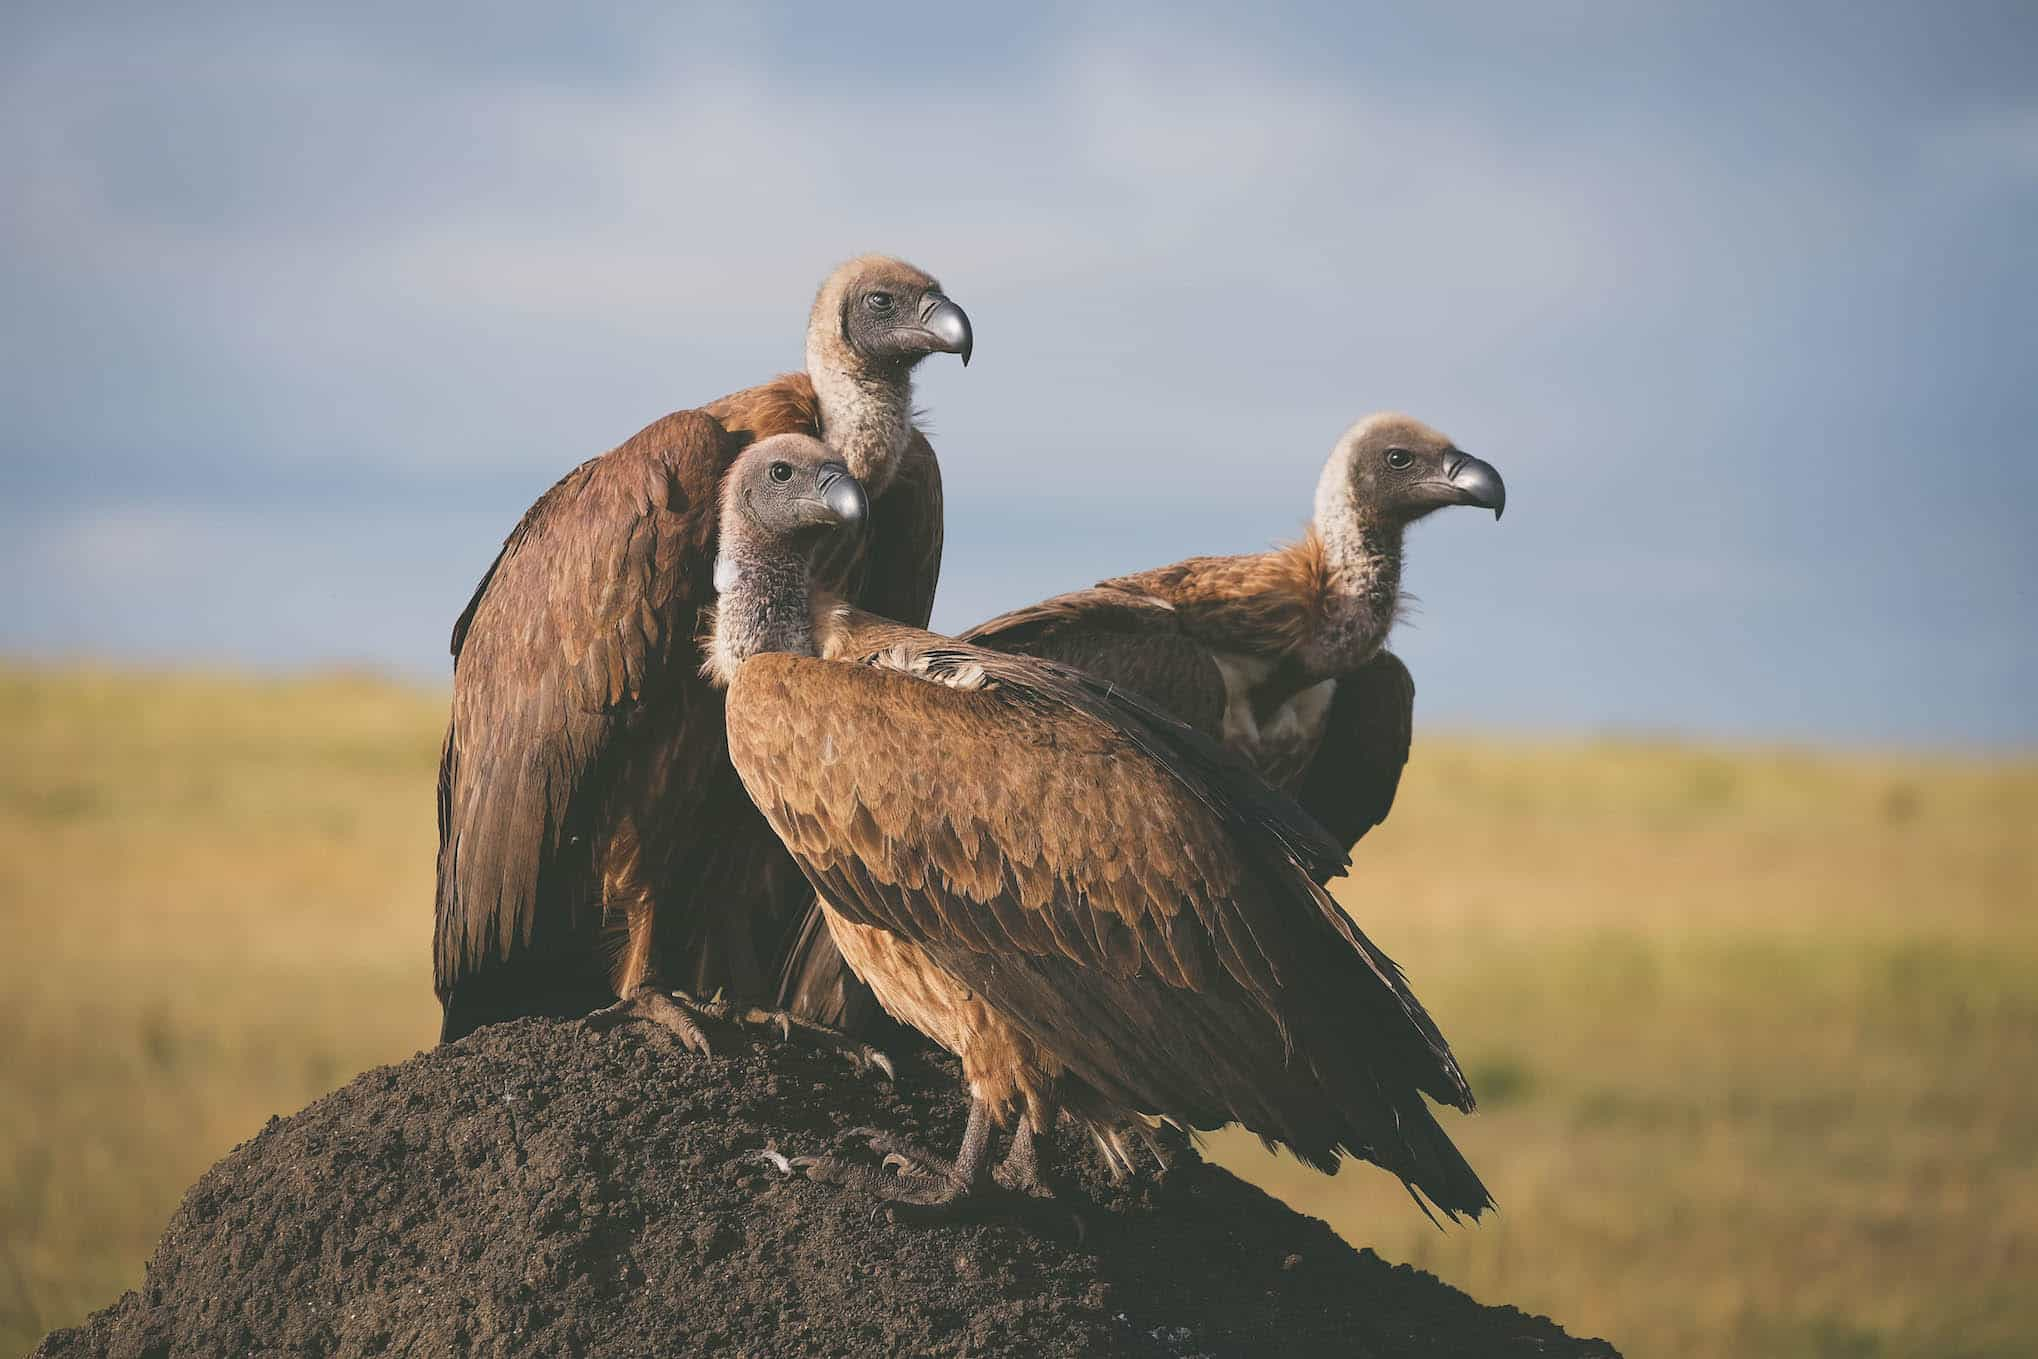 Vultures in the Masai Mara